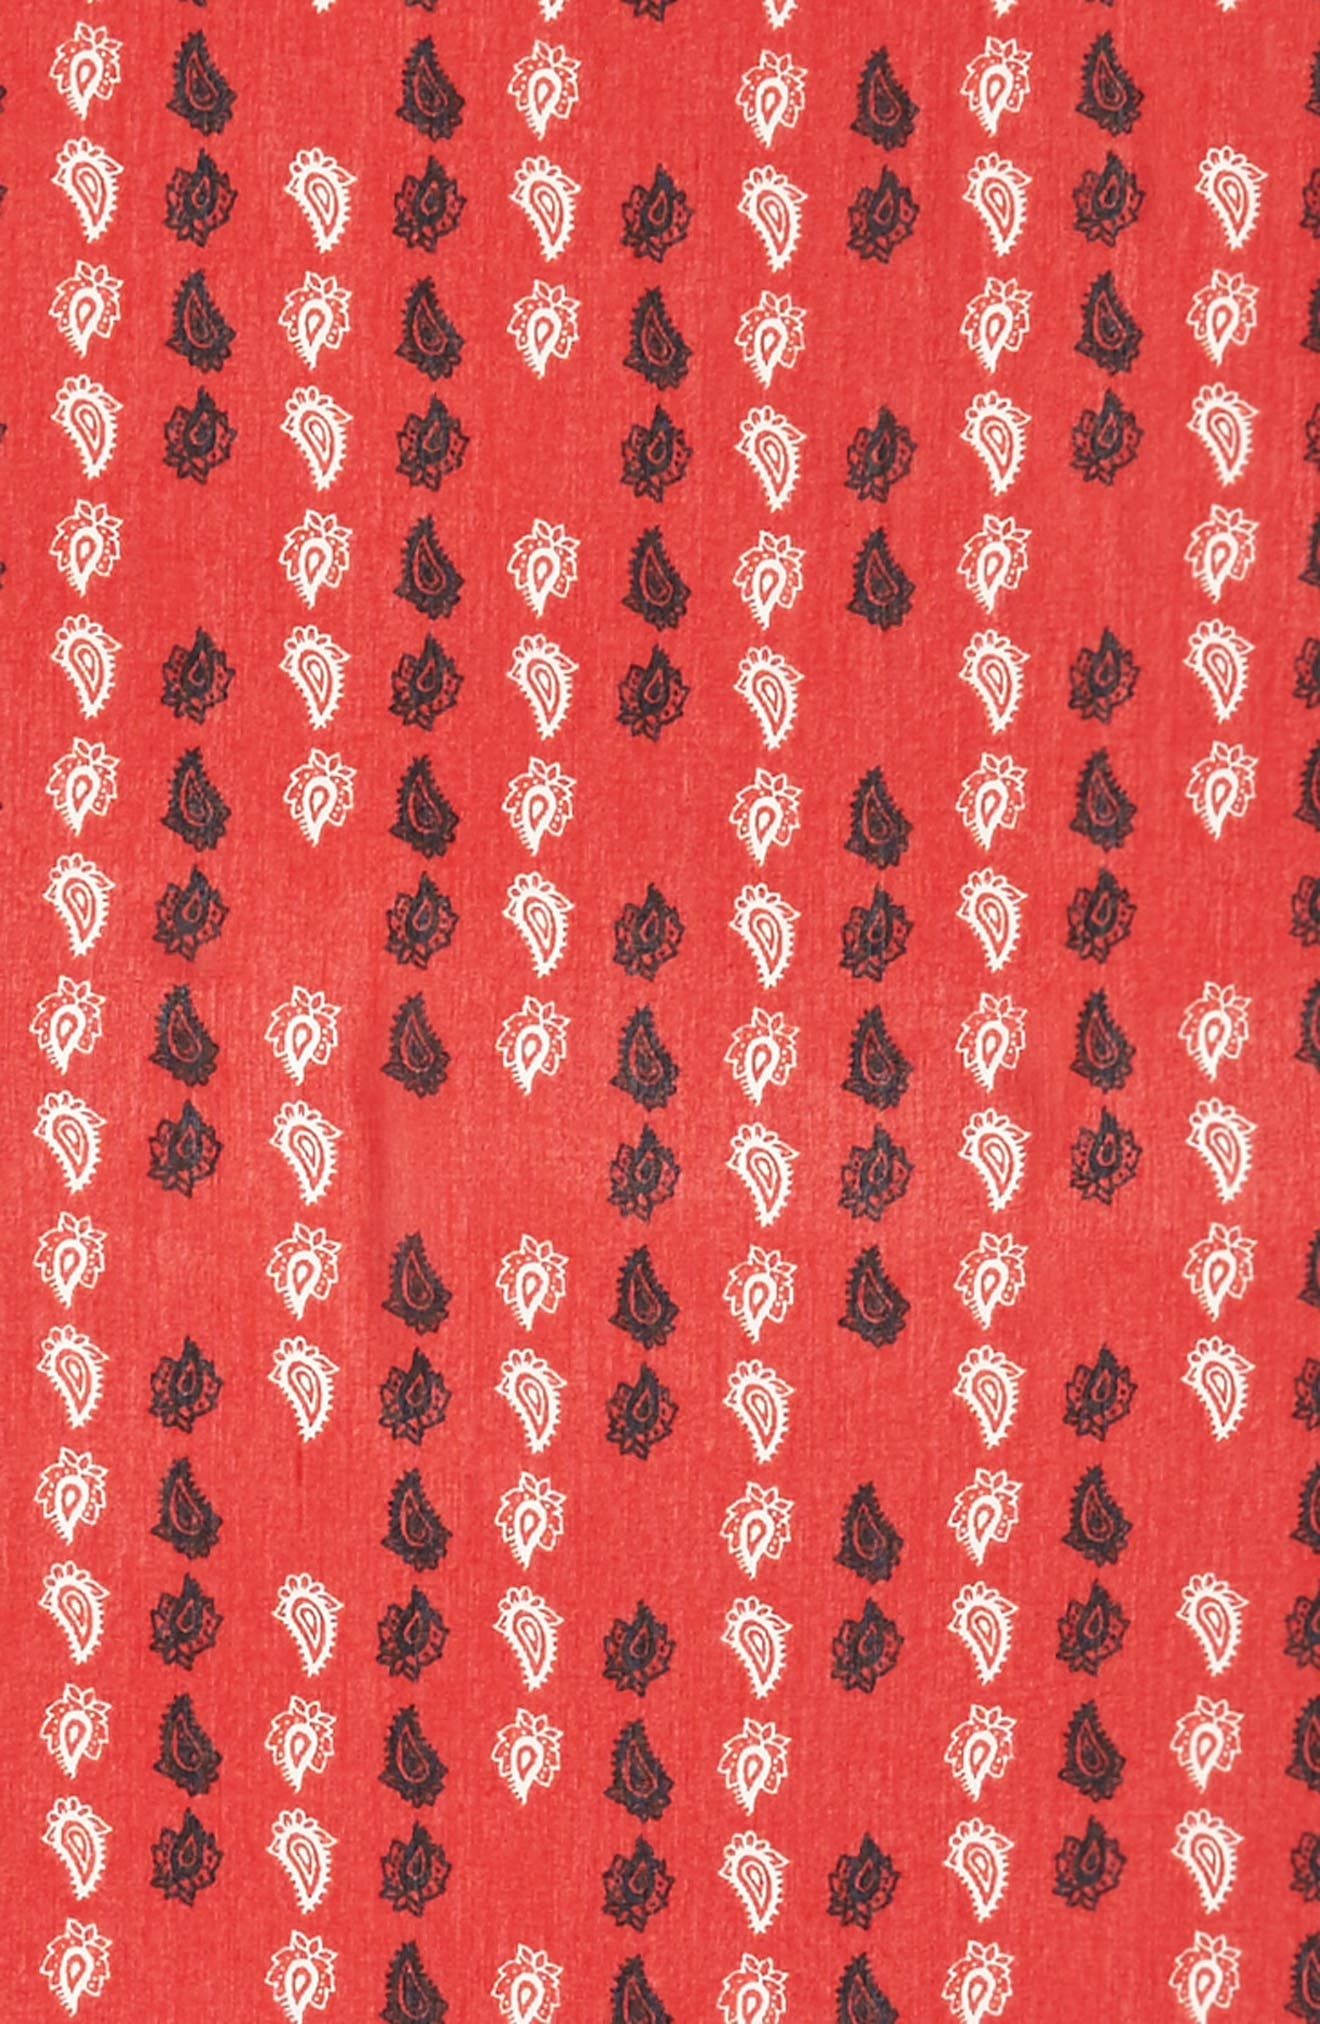 Vertical Paisley Oblong Scarf,                             Alternate thumbnail 4, color,                             Poppy Red